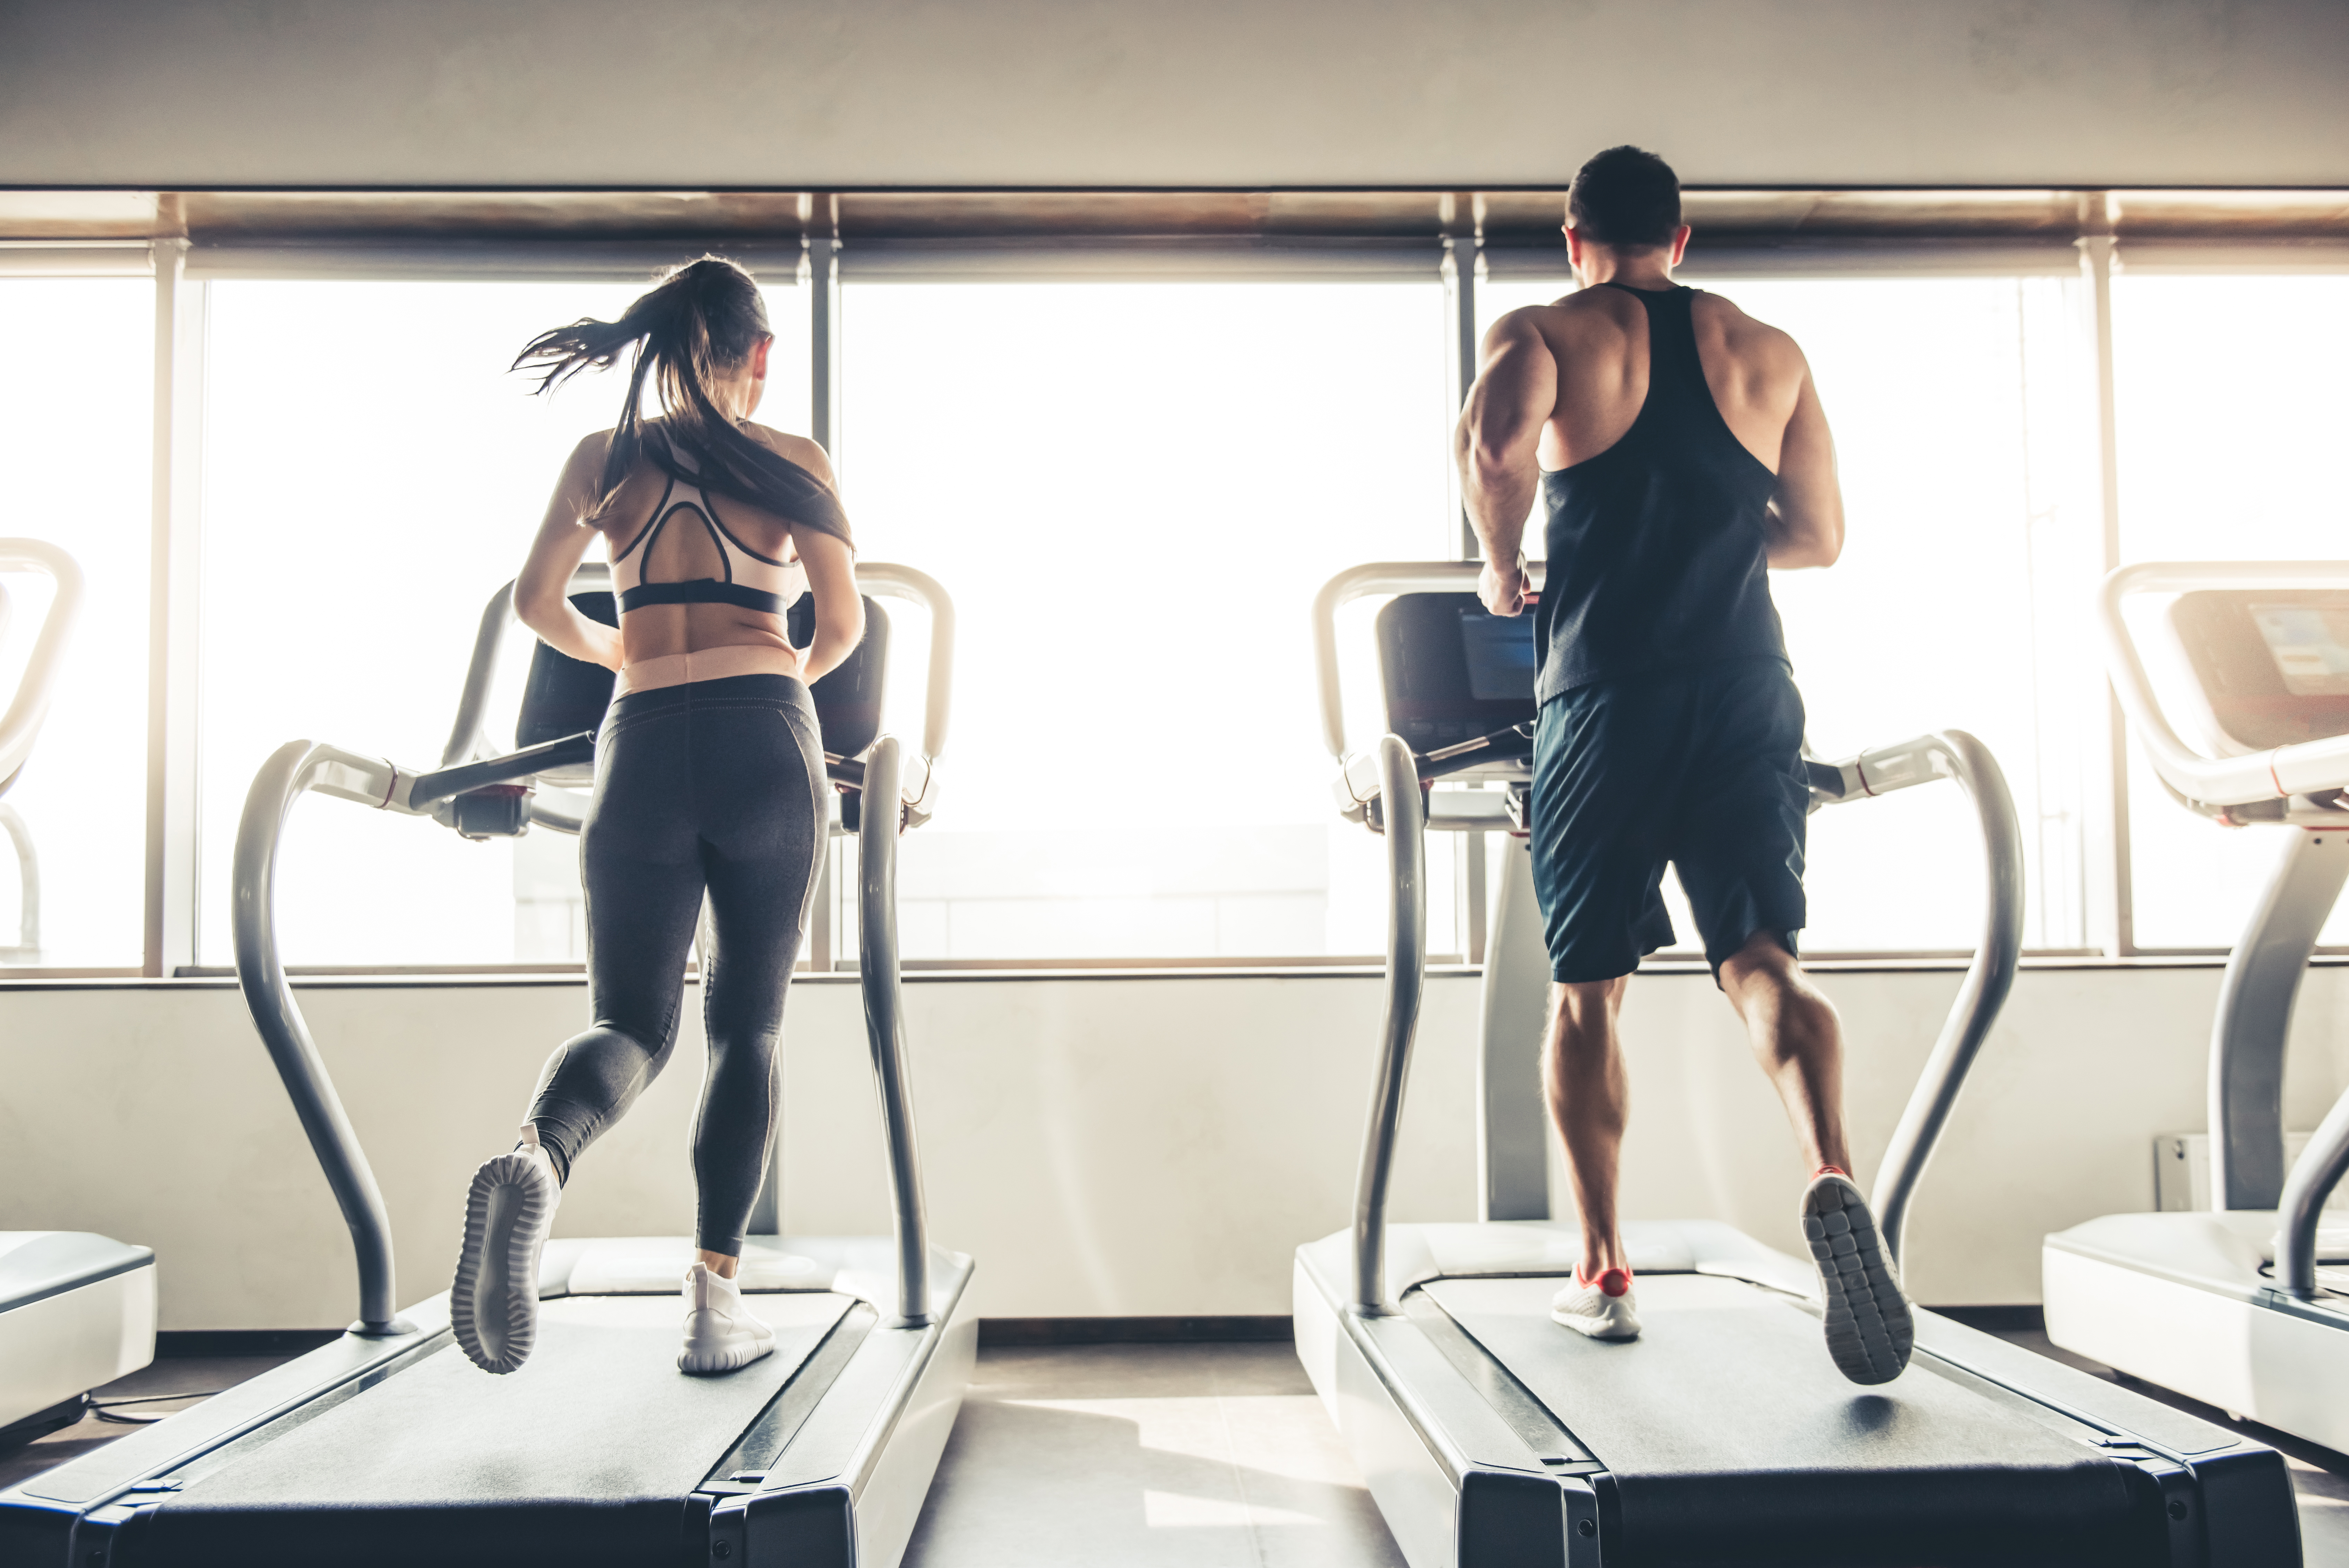 Can You Lose Weight Using The Treadmill For An Hour For Five Days